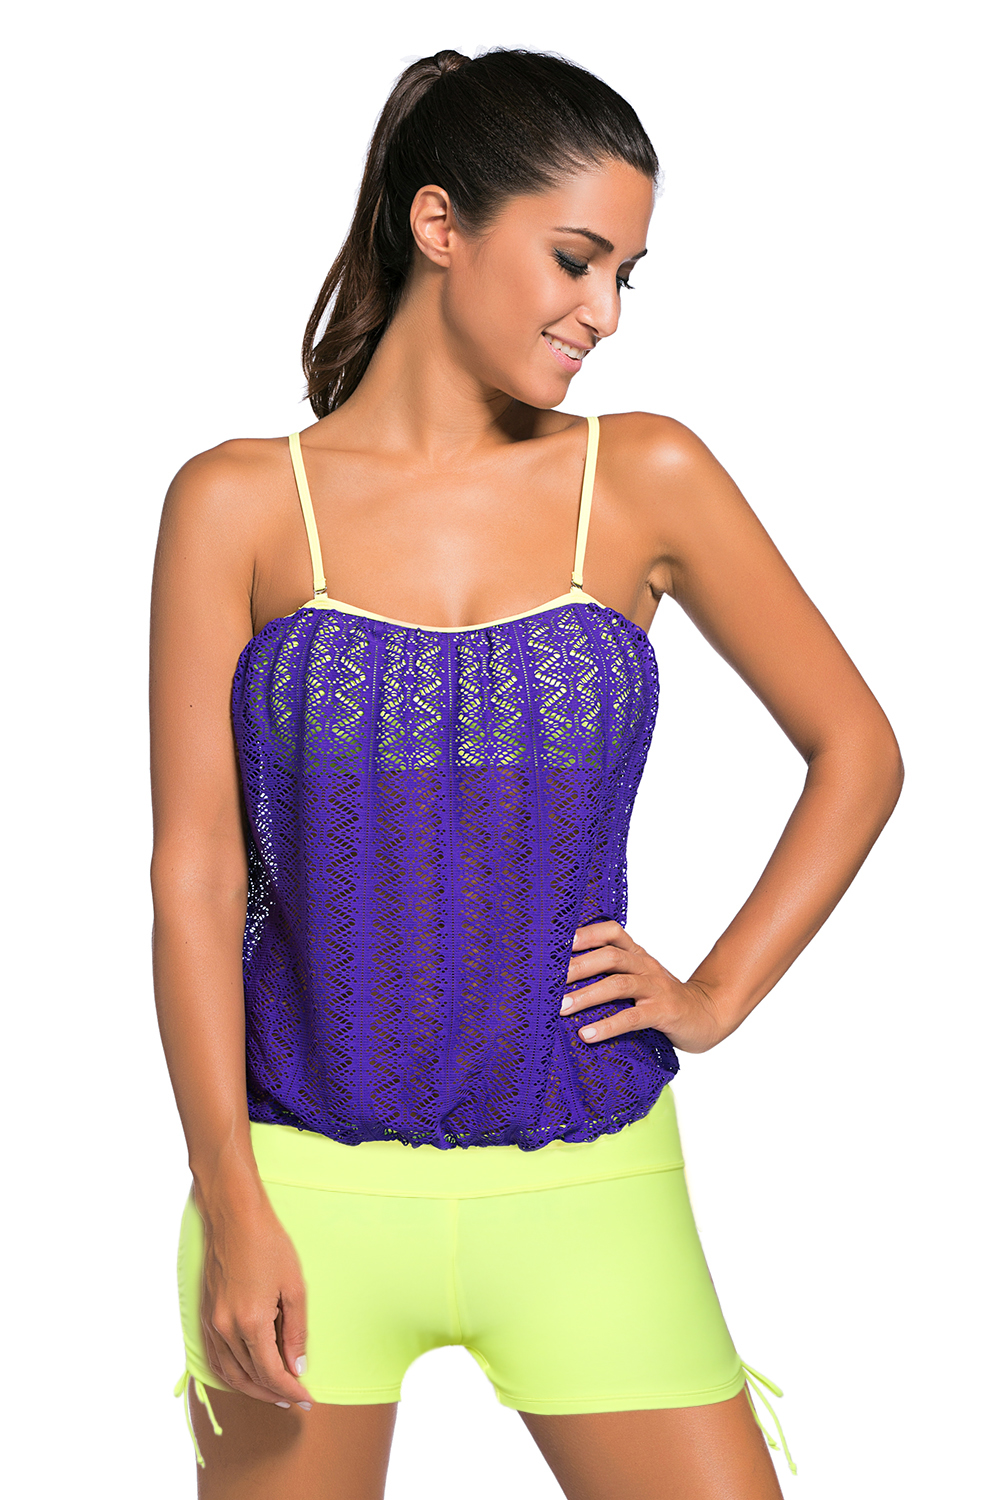 BY41917-8 Purple Lace Overly 2pcs Bandeau Tankini Swimsuit